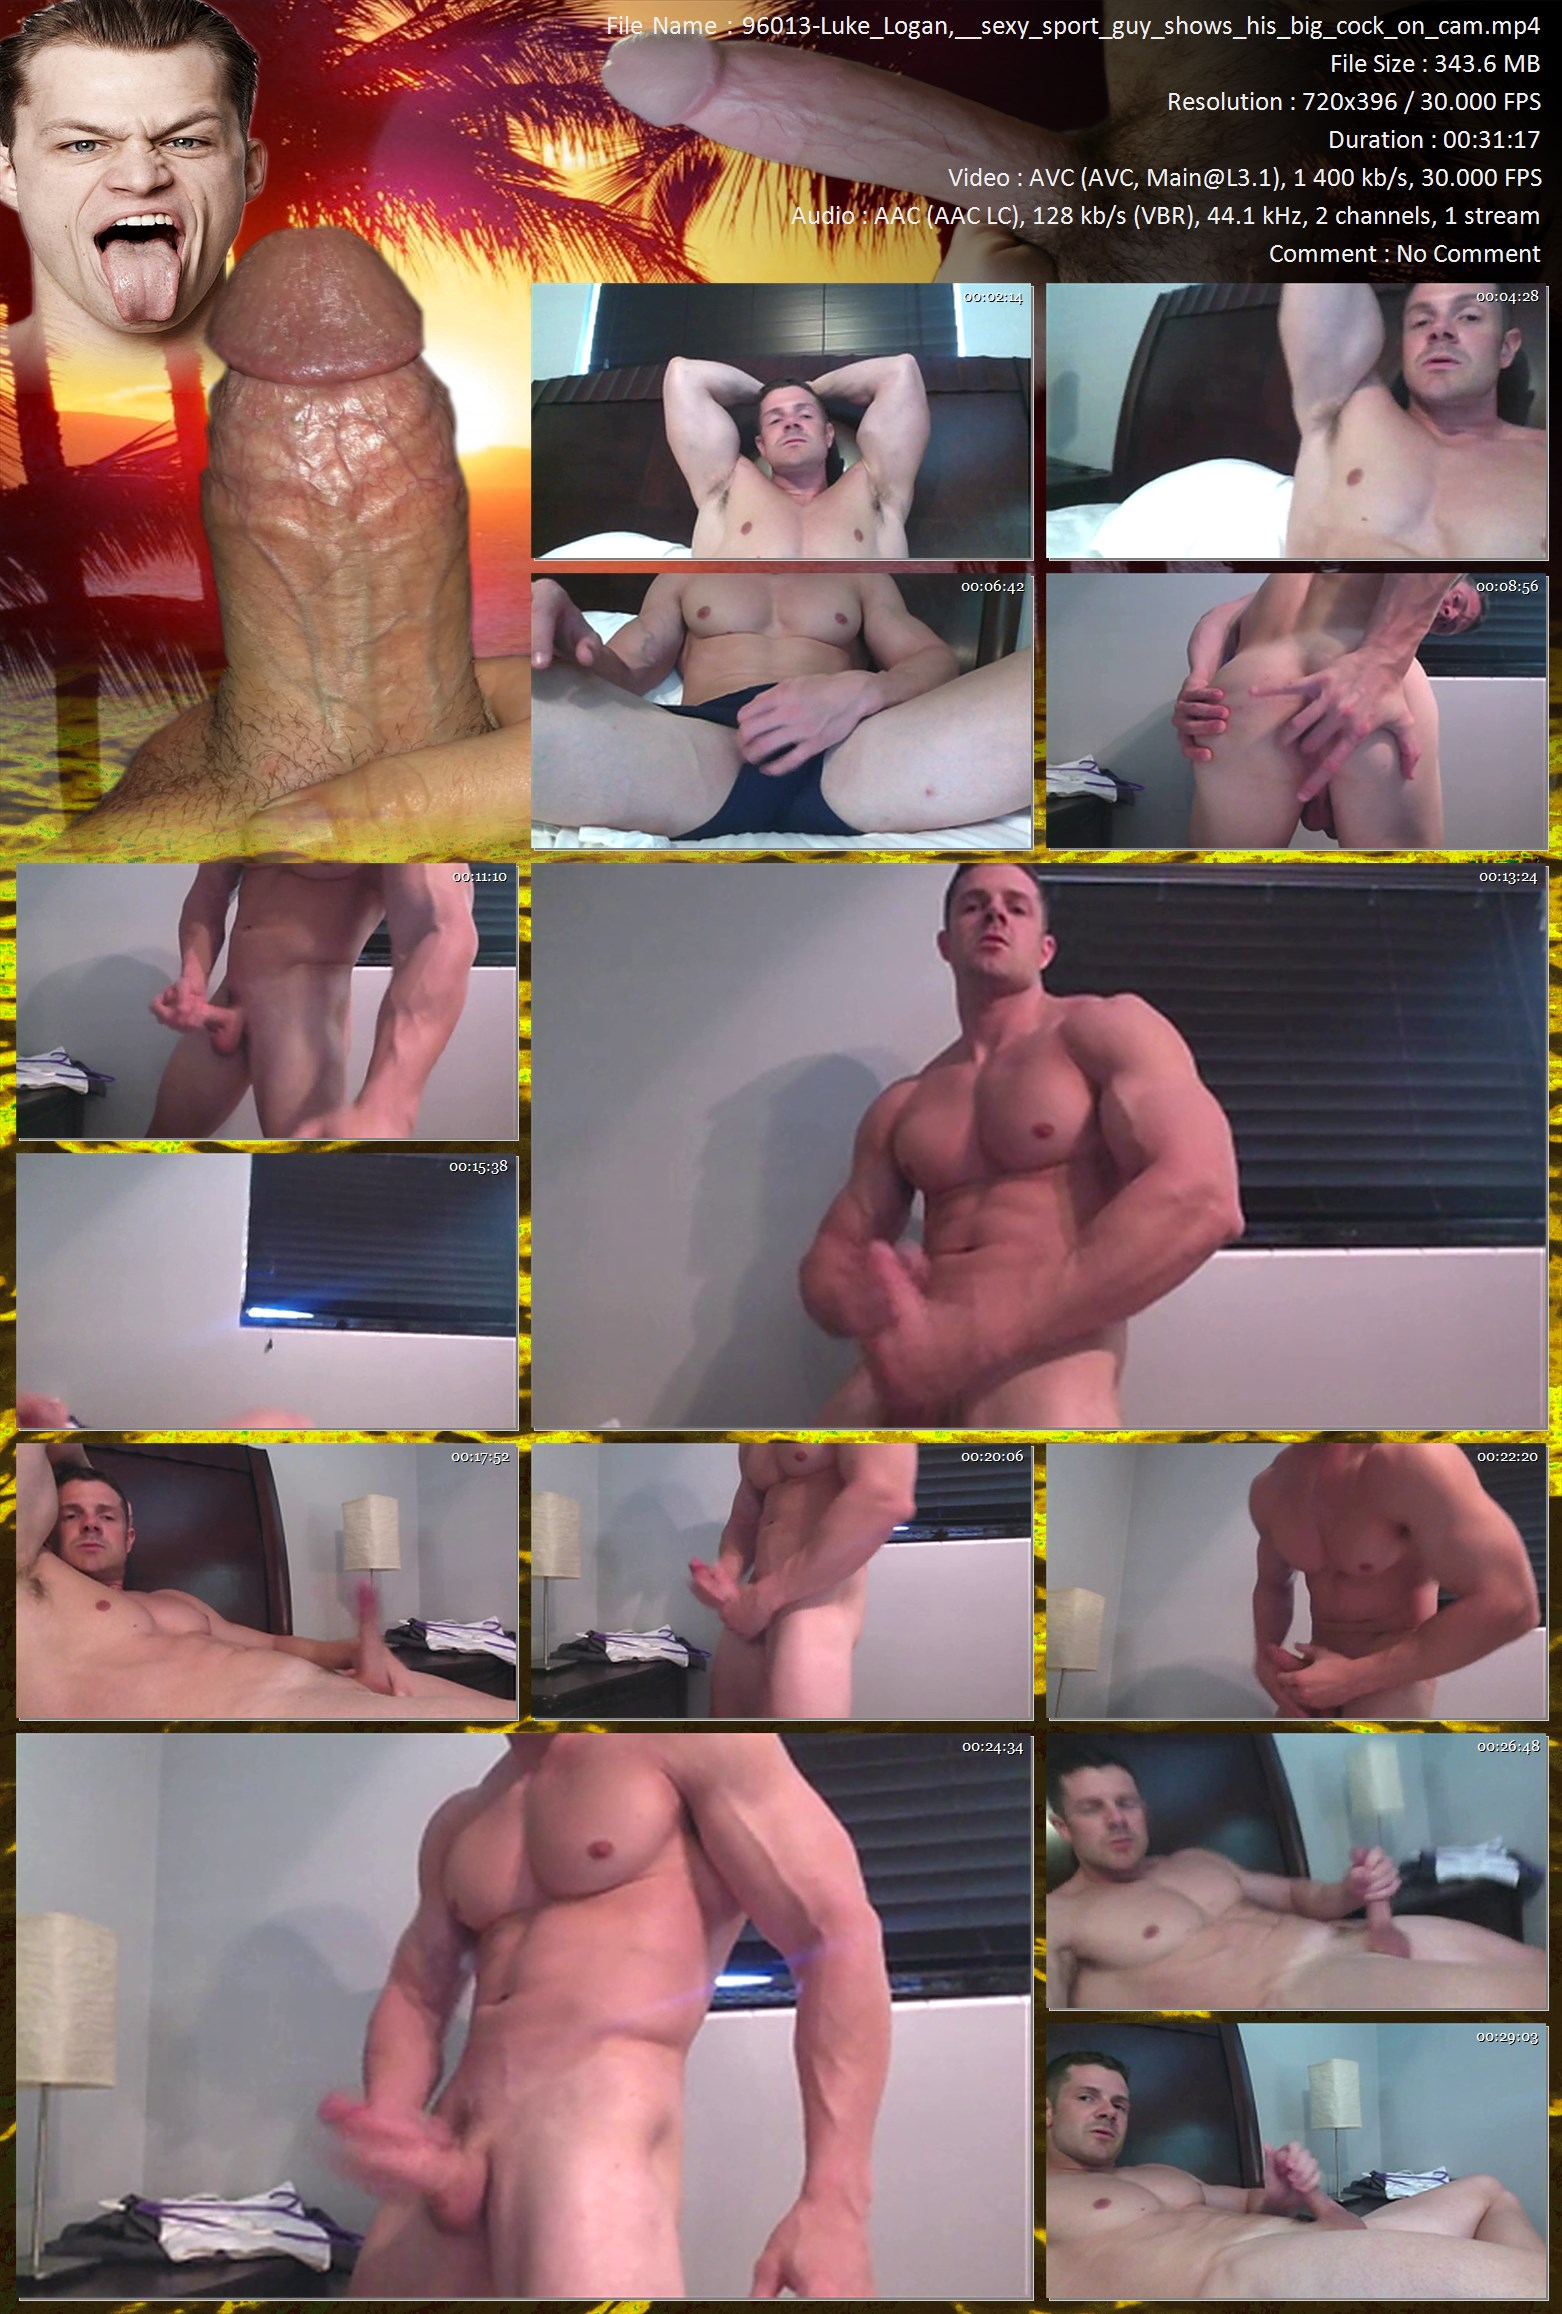 Guy on cam 872